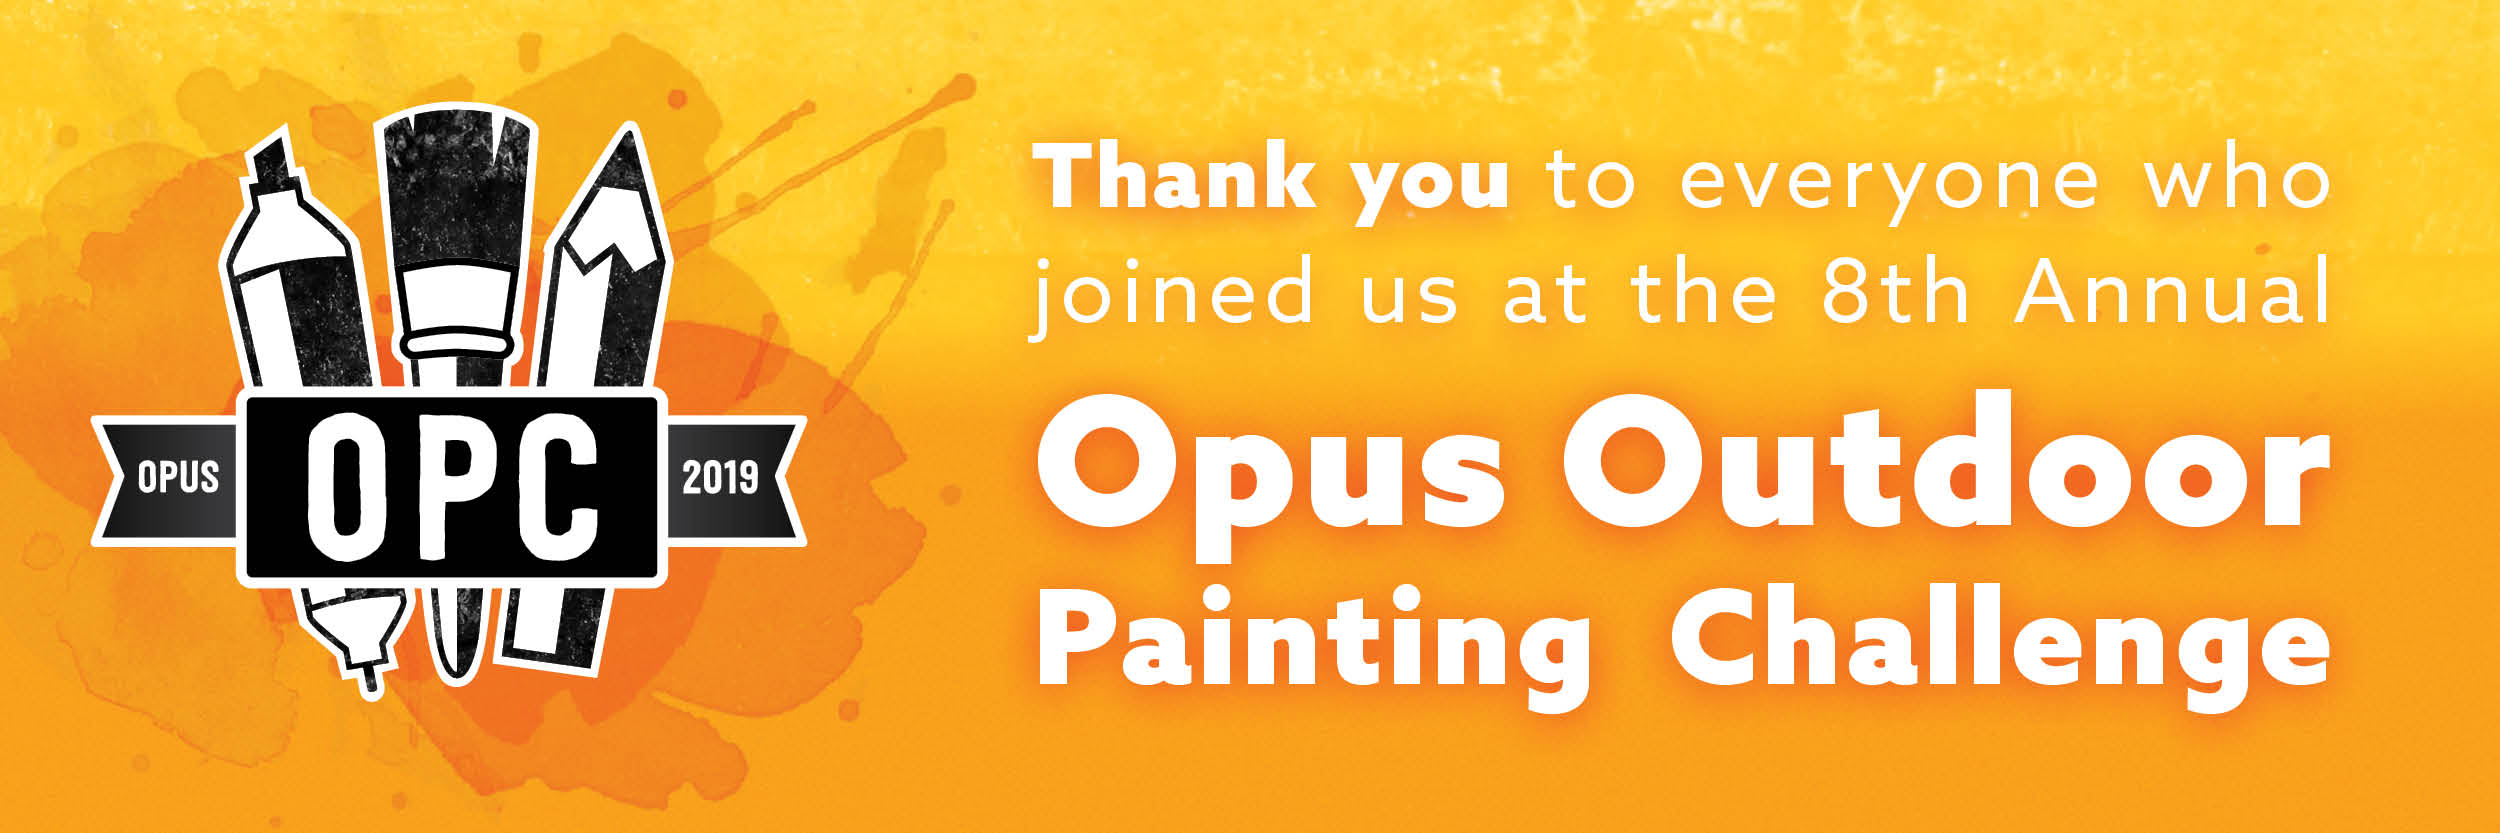 Thank you to everyone who joined their creative community for the 8th Annual #OpusOPC!